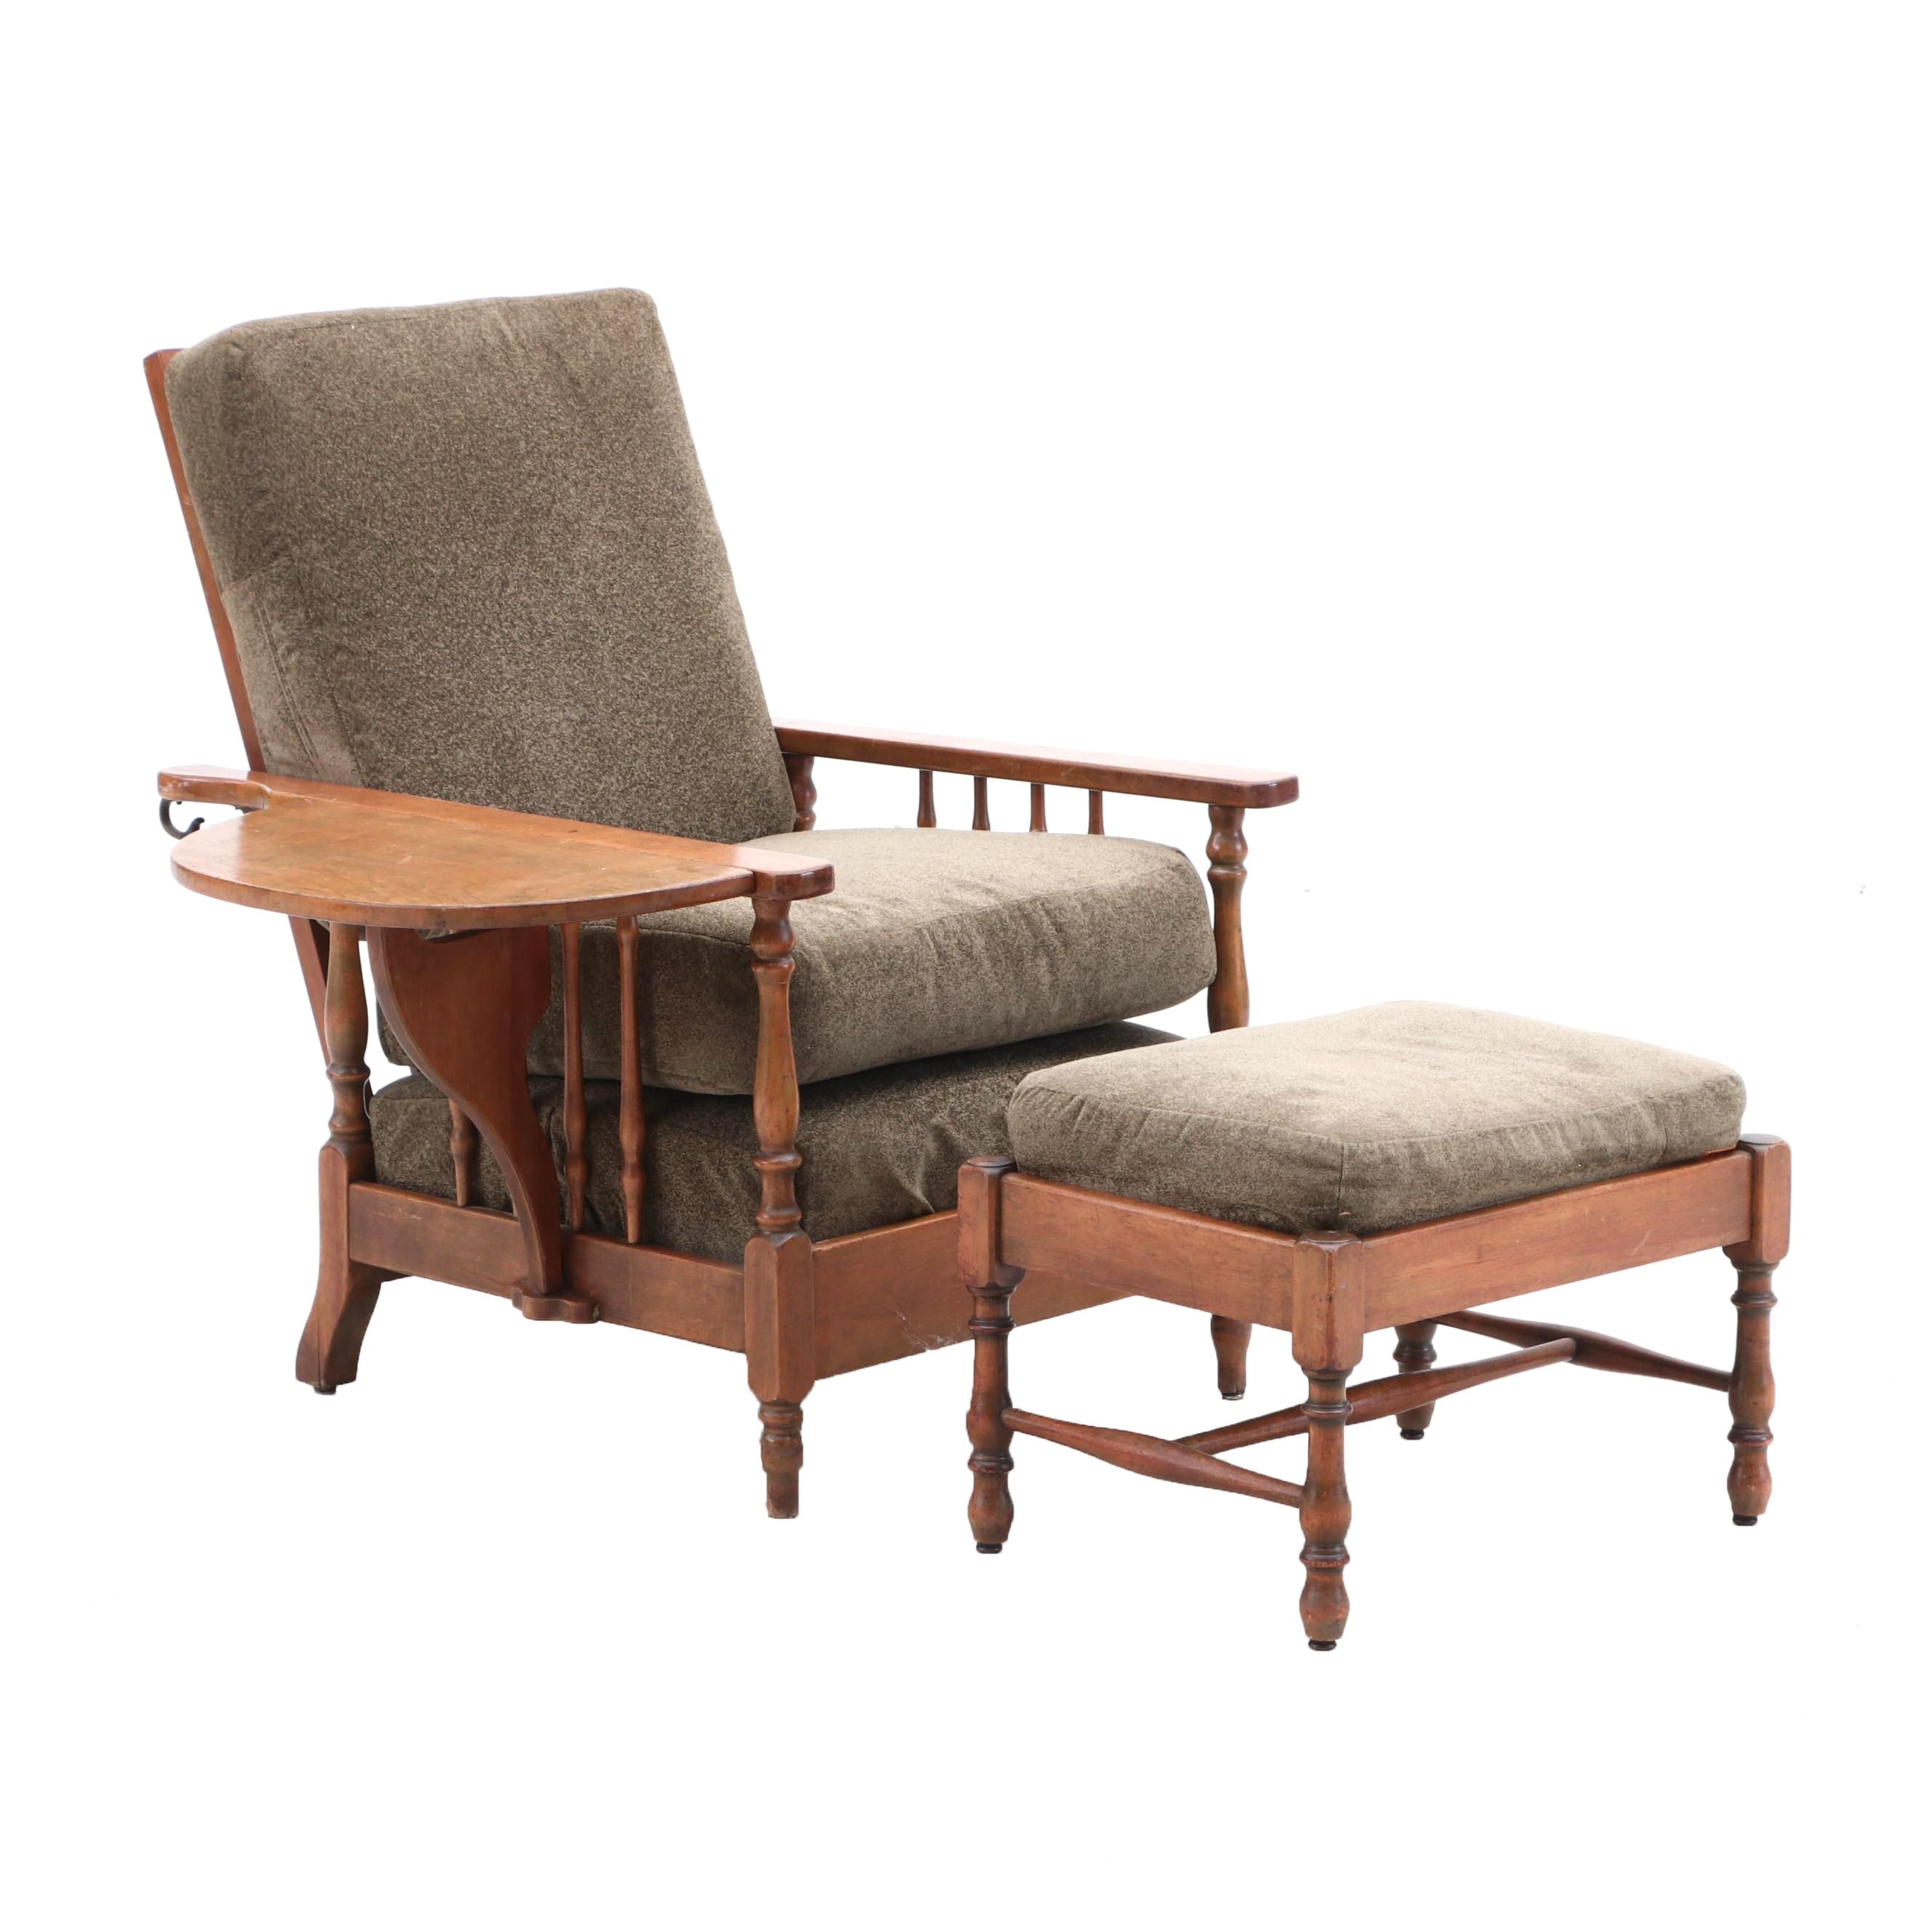 Walnut Drop Leaf Lounge Chair With Ottoman